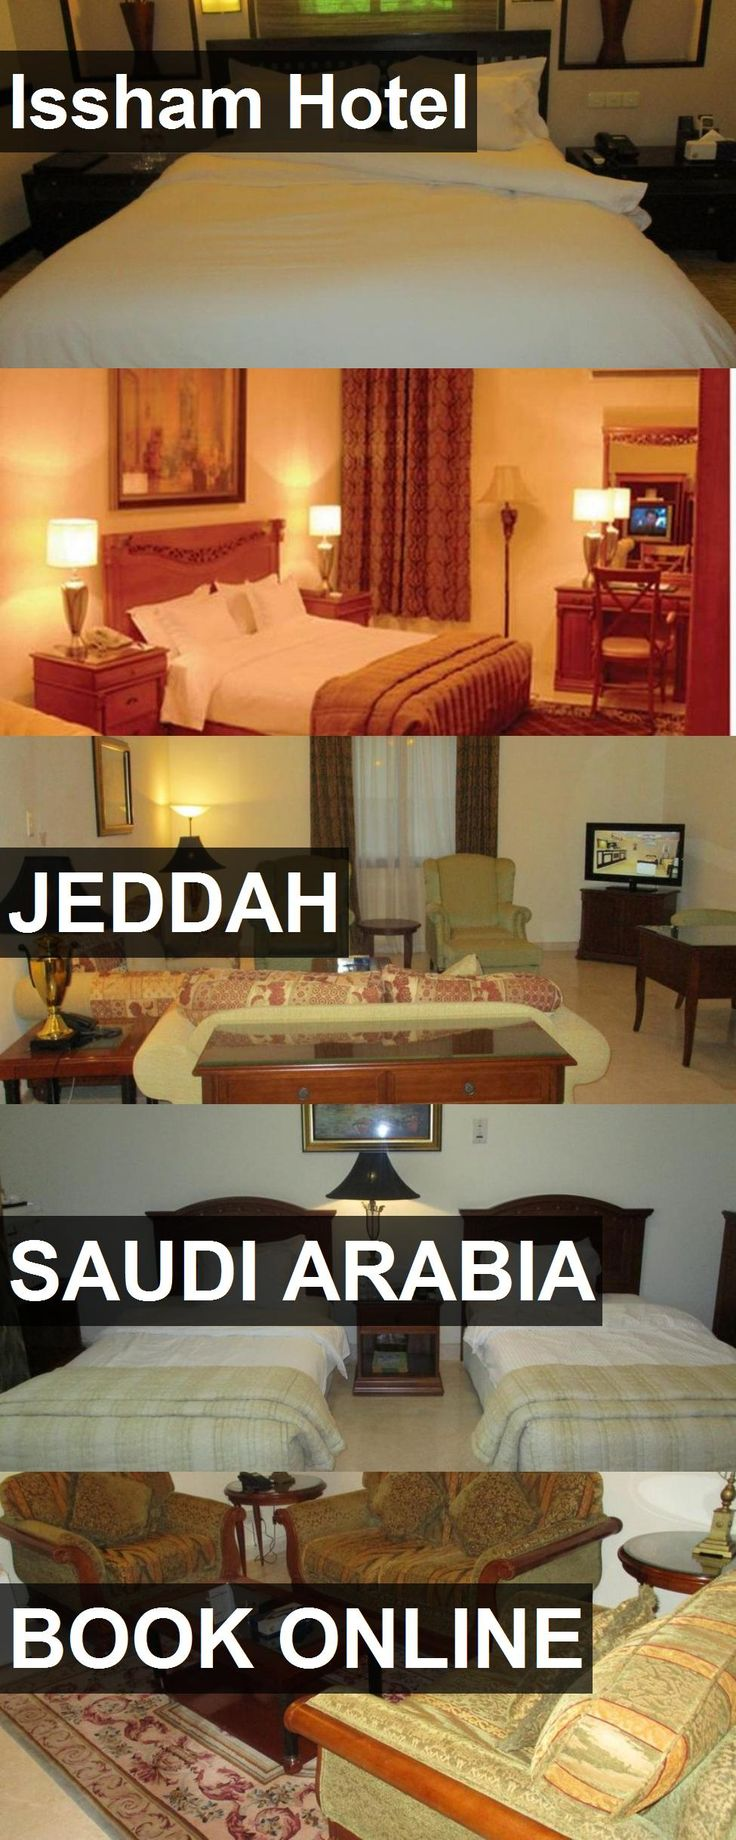 Issham Hotel In Jeddah Saudi Arabia For More Information Photos Reviews And